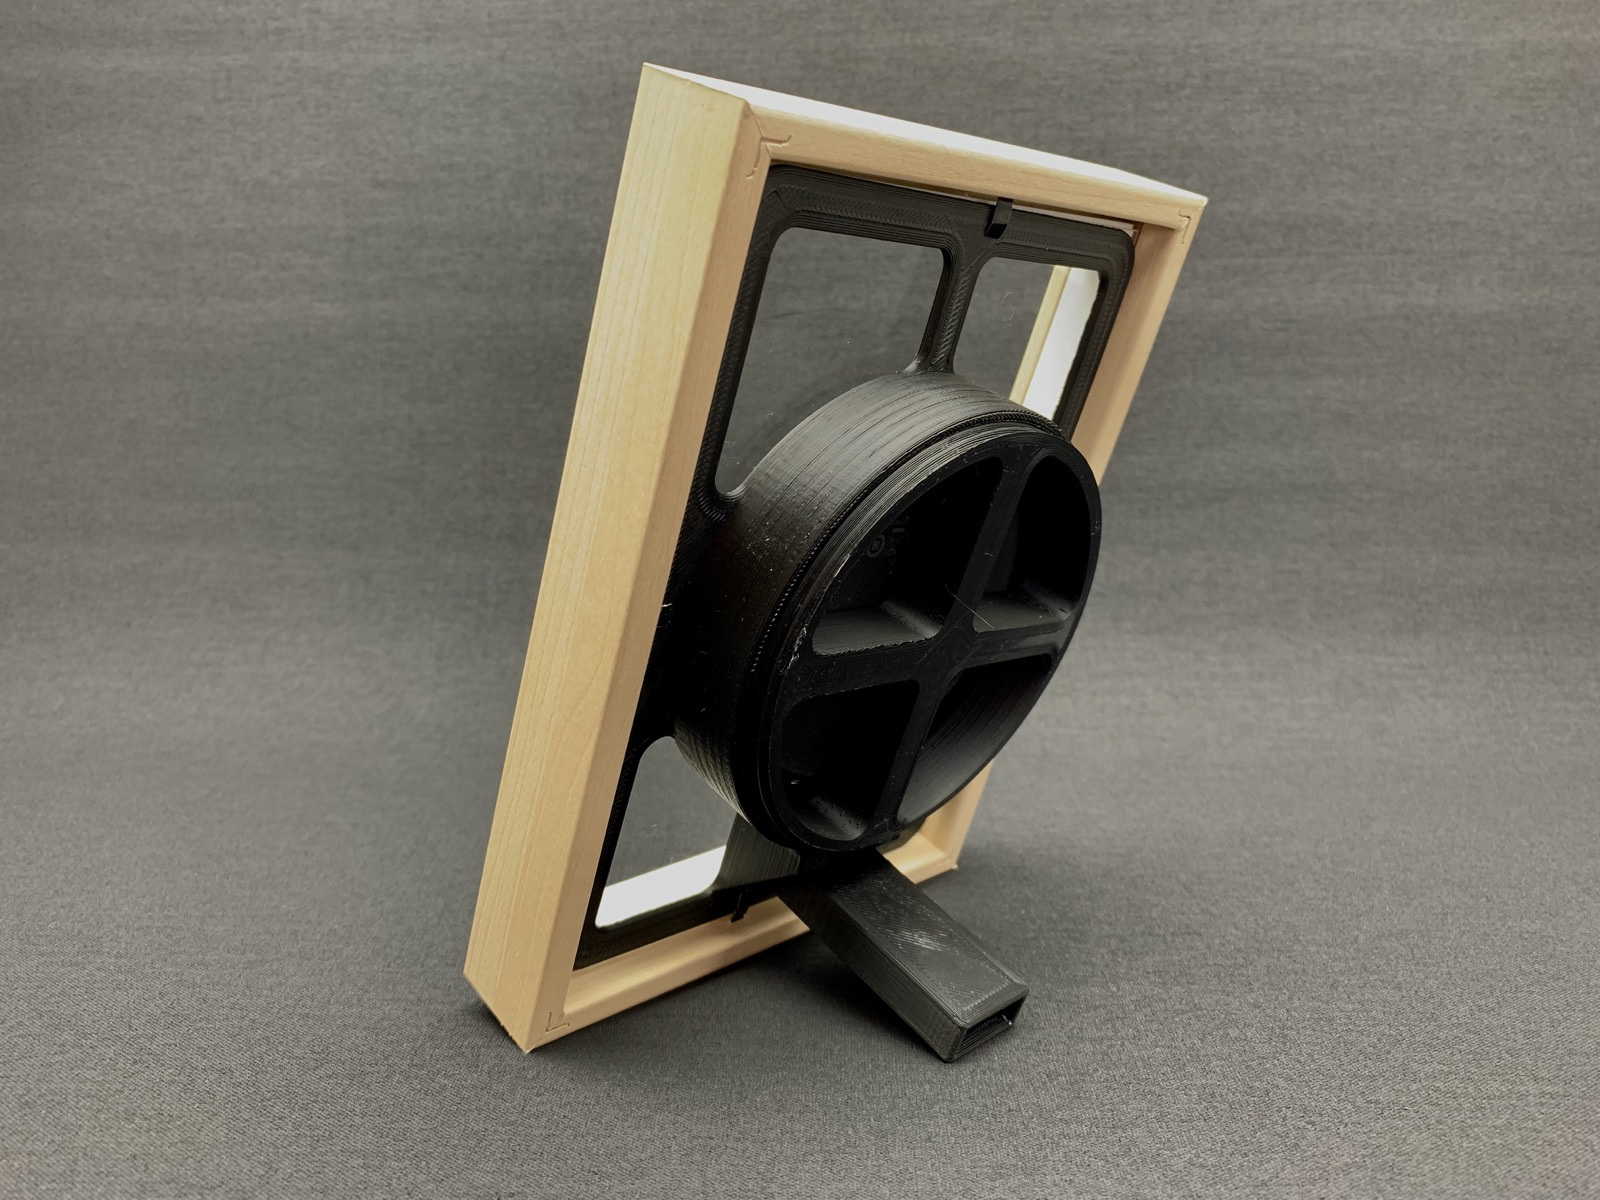 Qi charger picture frame insert